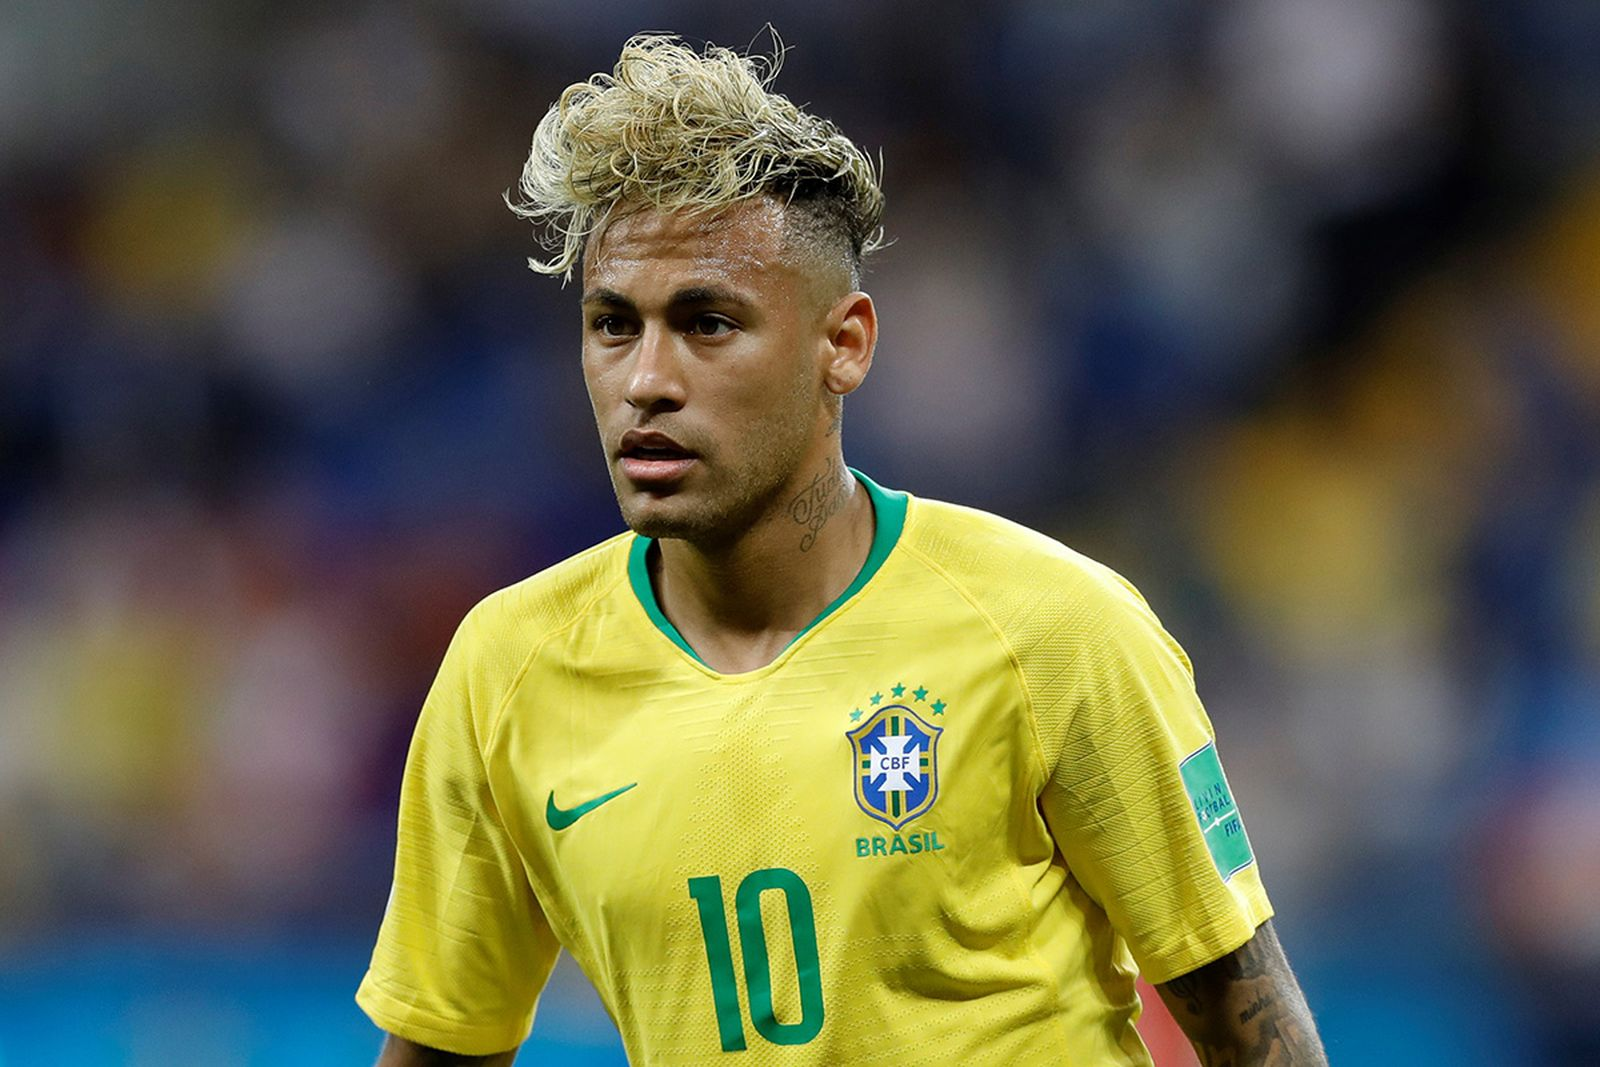 world cup 2018 hairstyles 2018 FIFA World Cup FIFA World Cup 2018 James Rodriguez